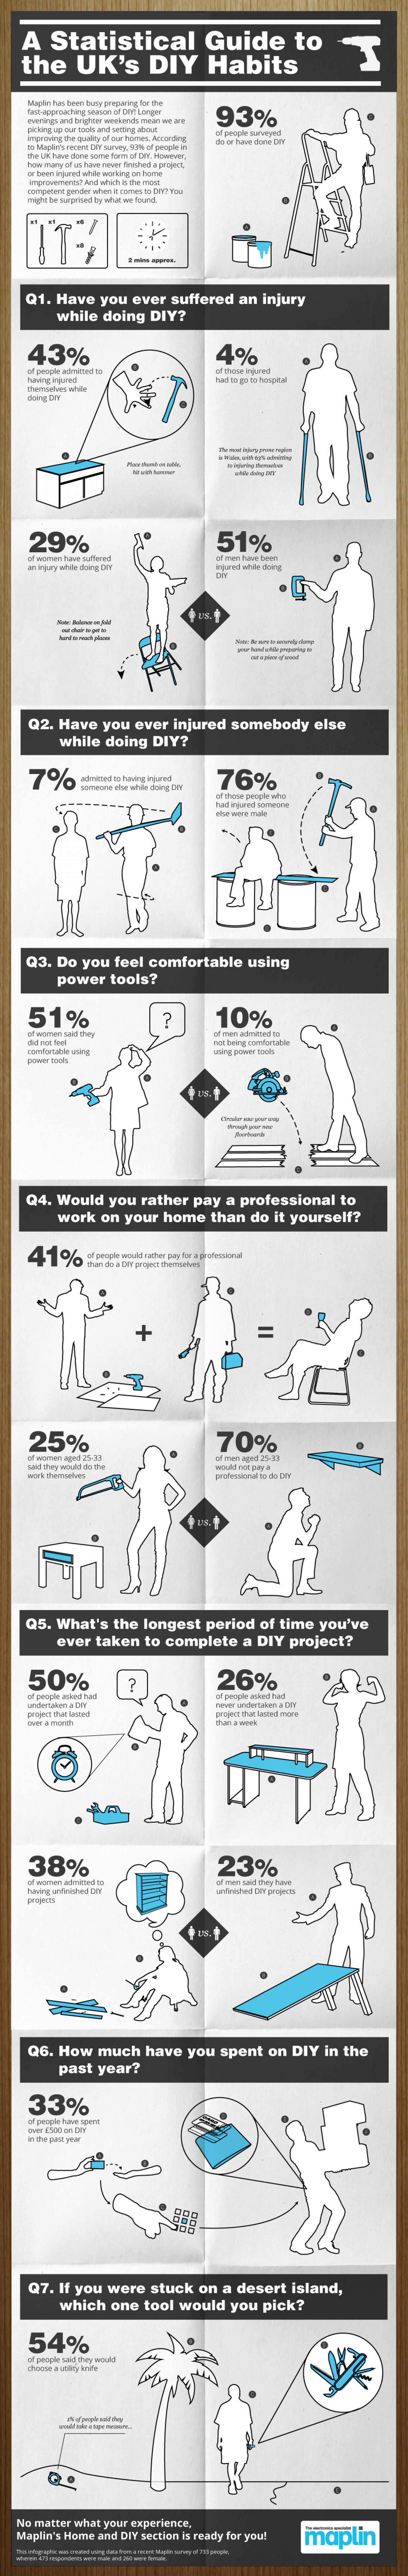 A Statistical Guide to the UK's DIY Habits Infographic